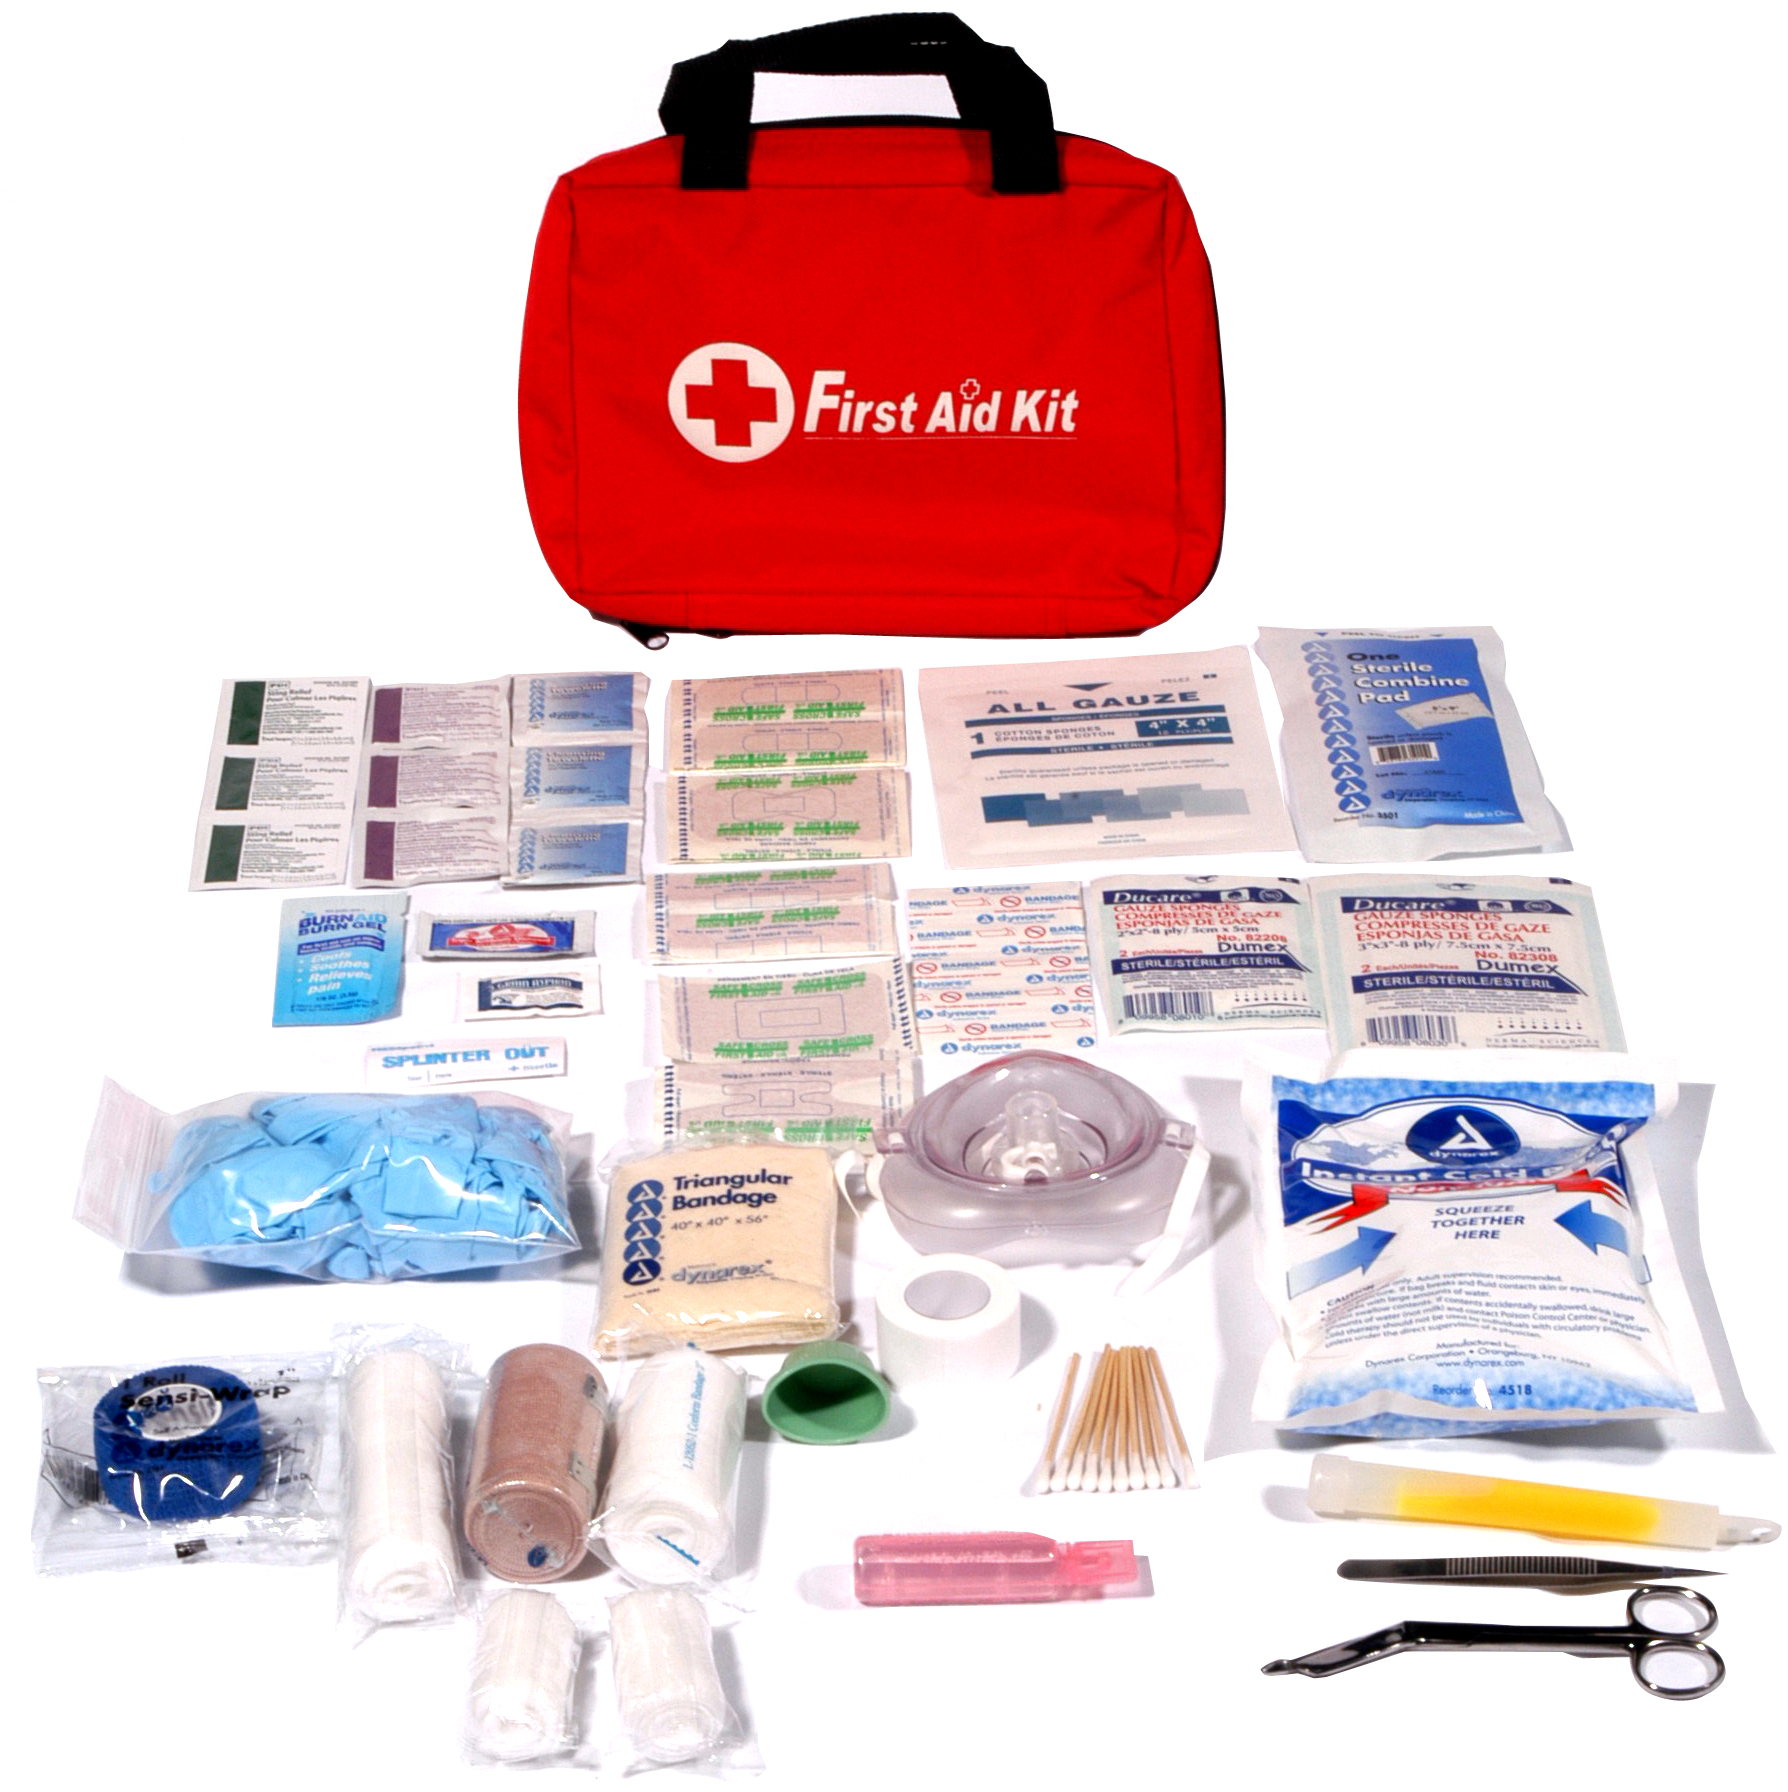 Emergency Deluxe First-Aid Kit image